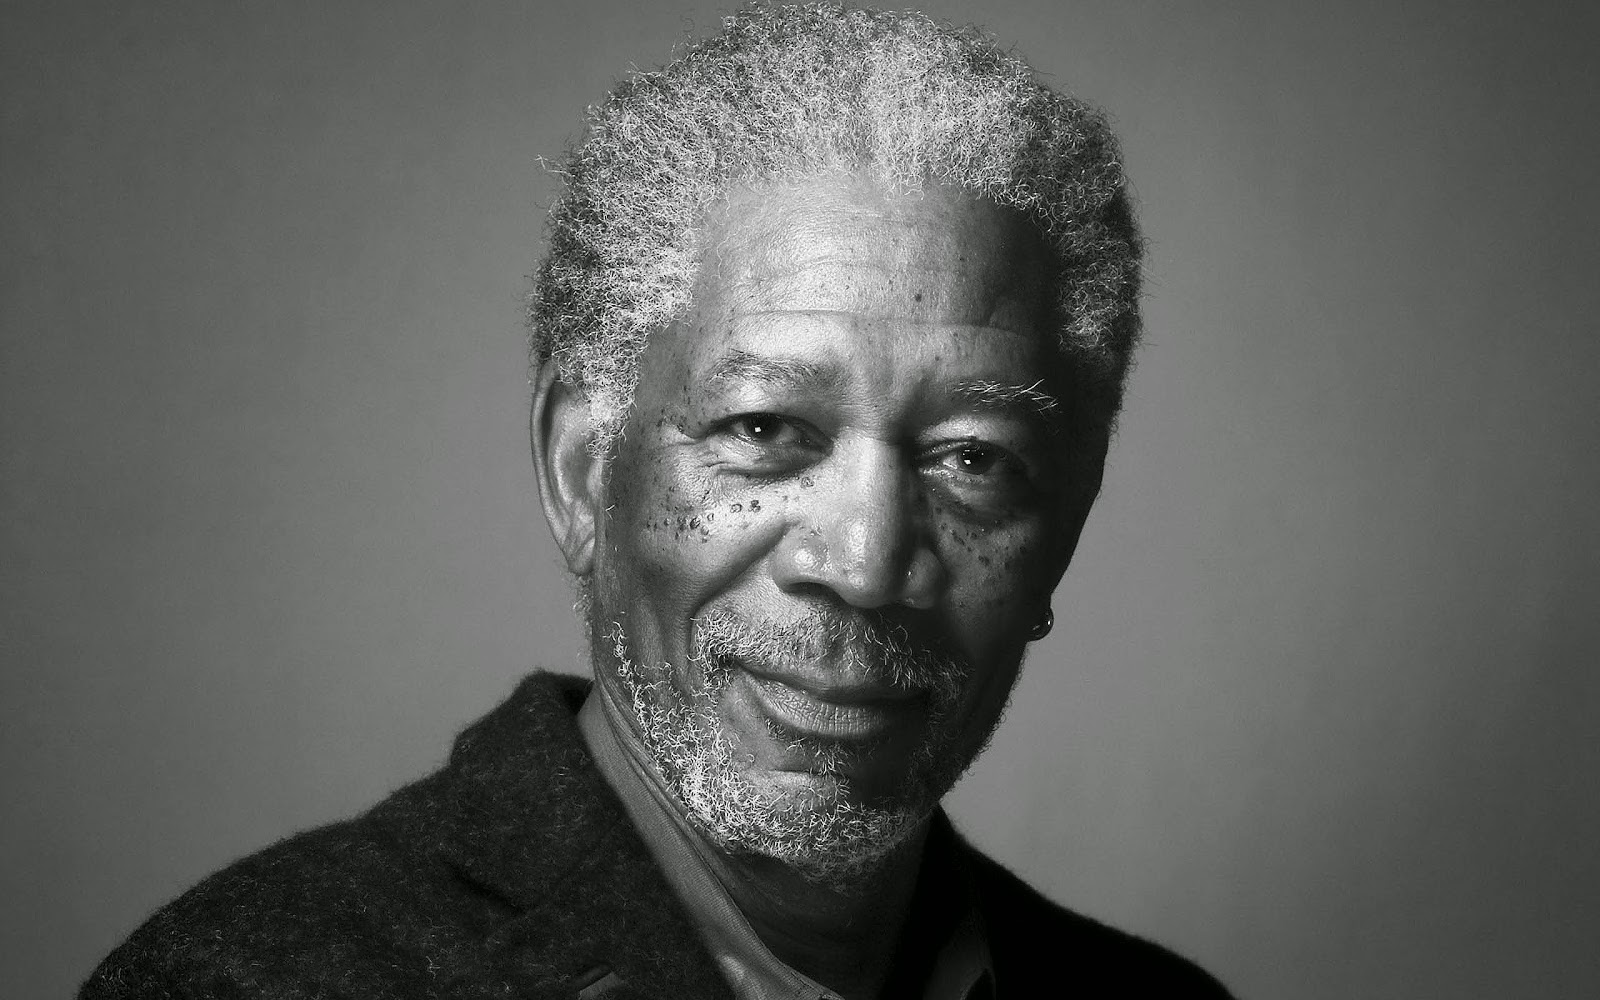 http://www.ohmymag.com/morgan-freeman/wallpaper